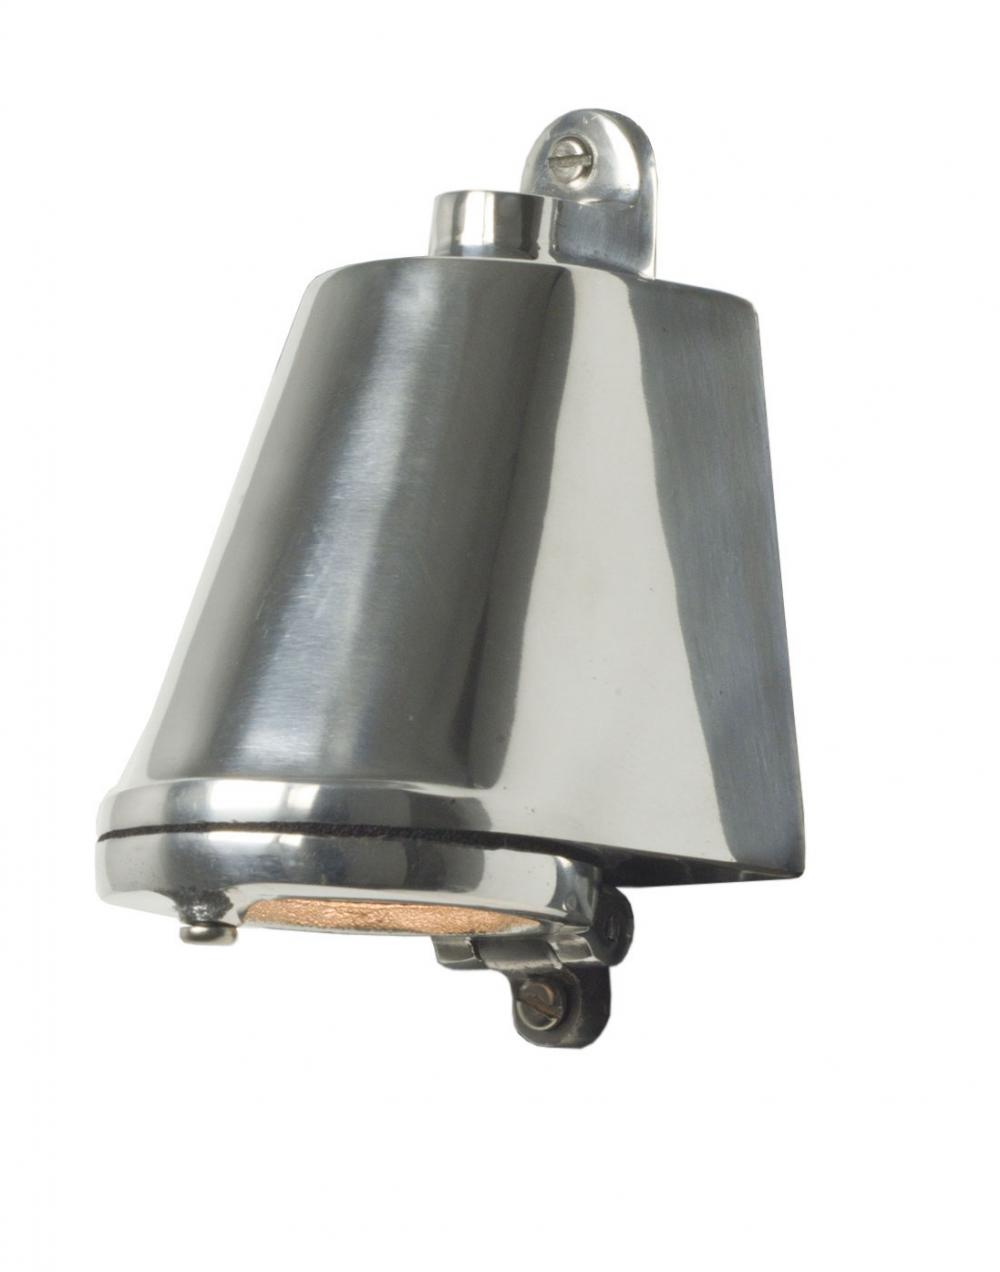 Mast exterior wall light